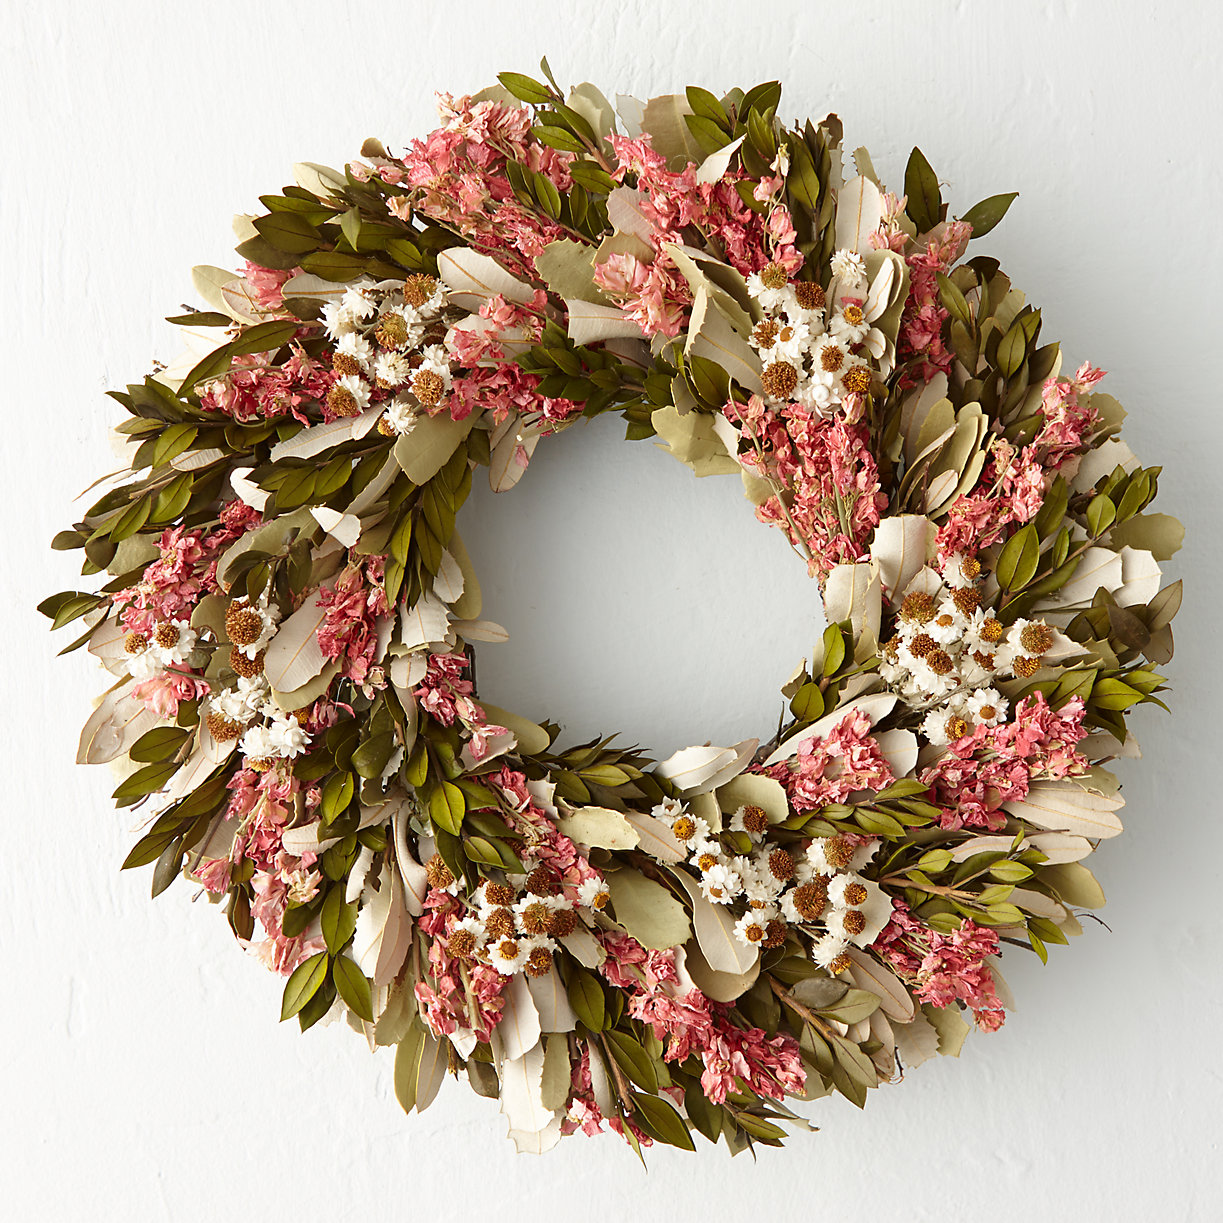 Lovely garden wreath from Terrain